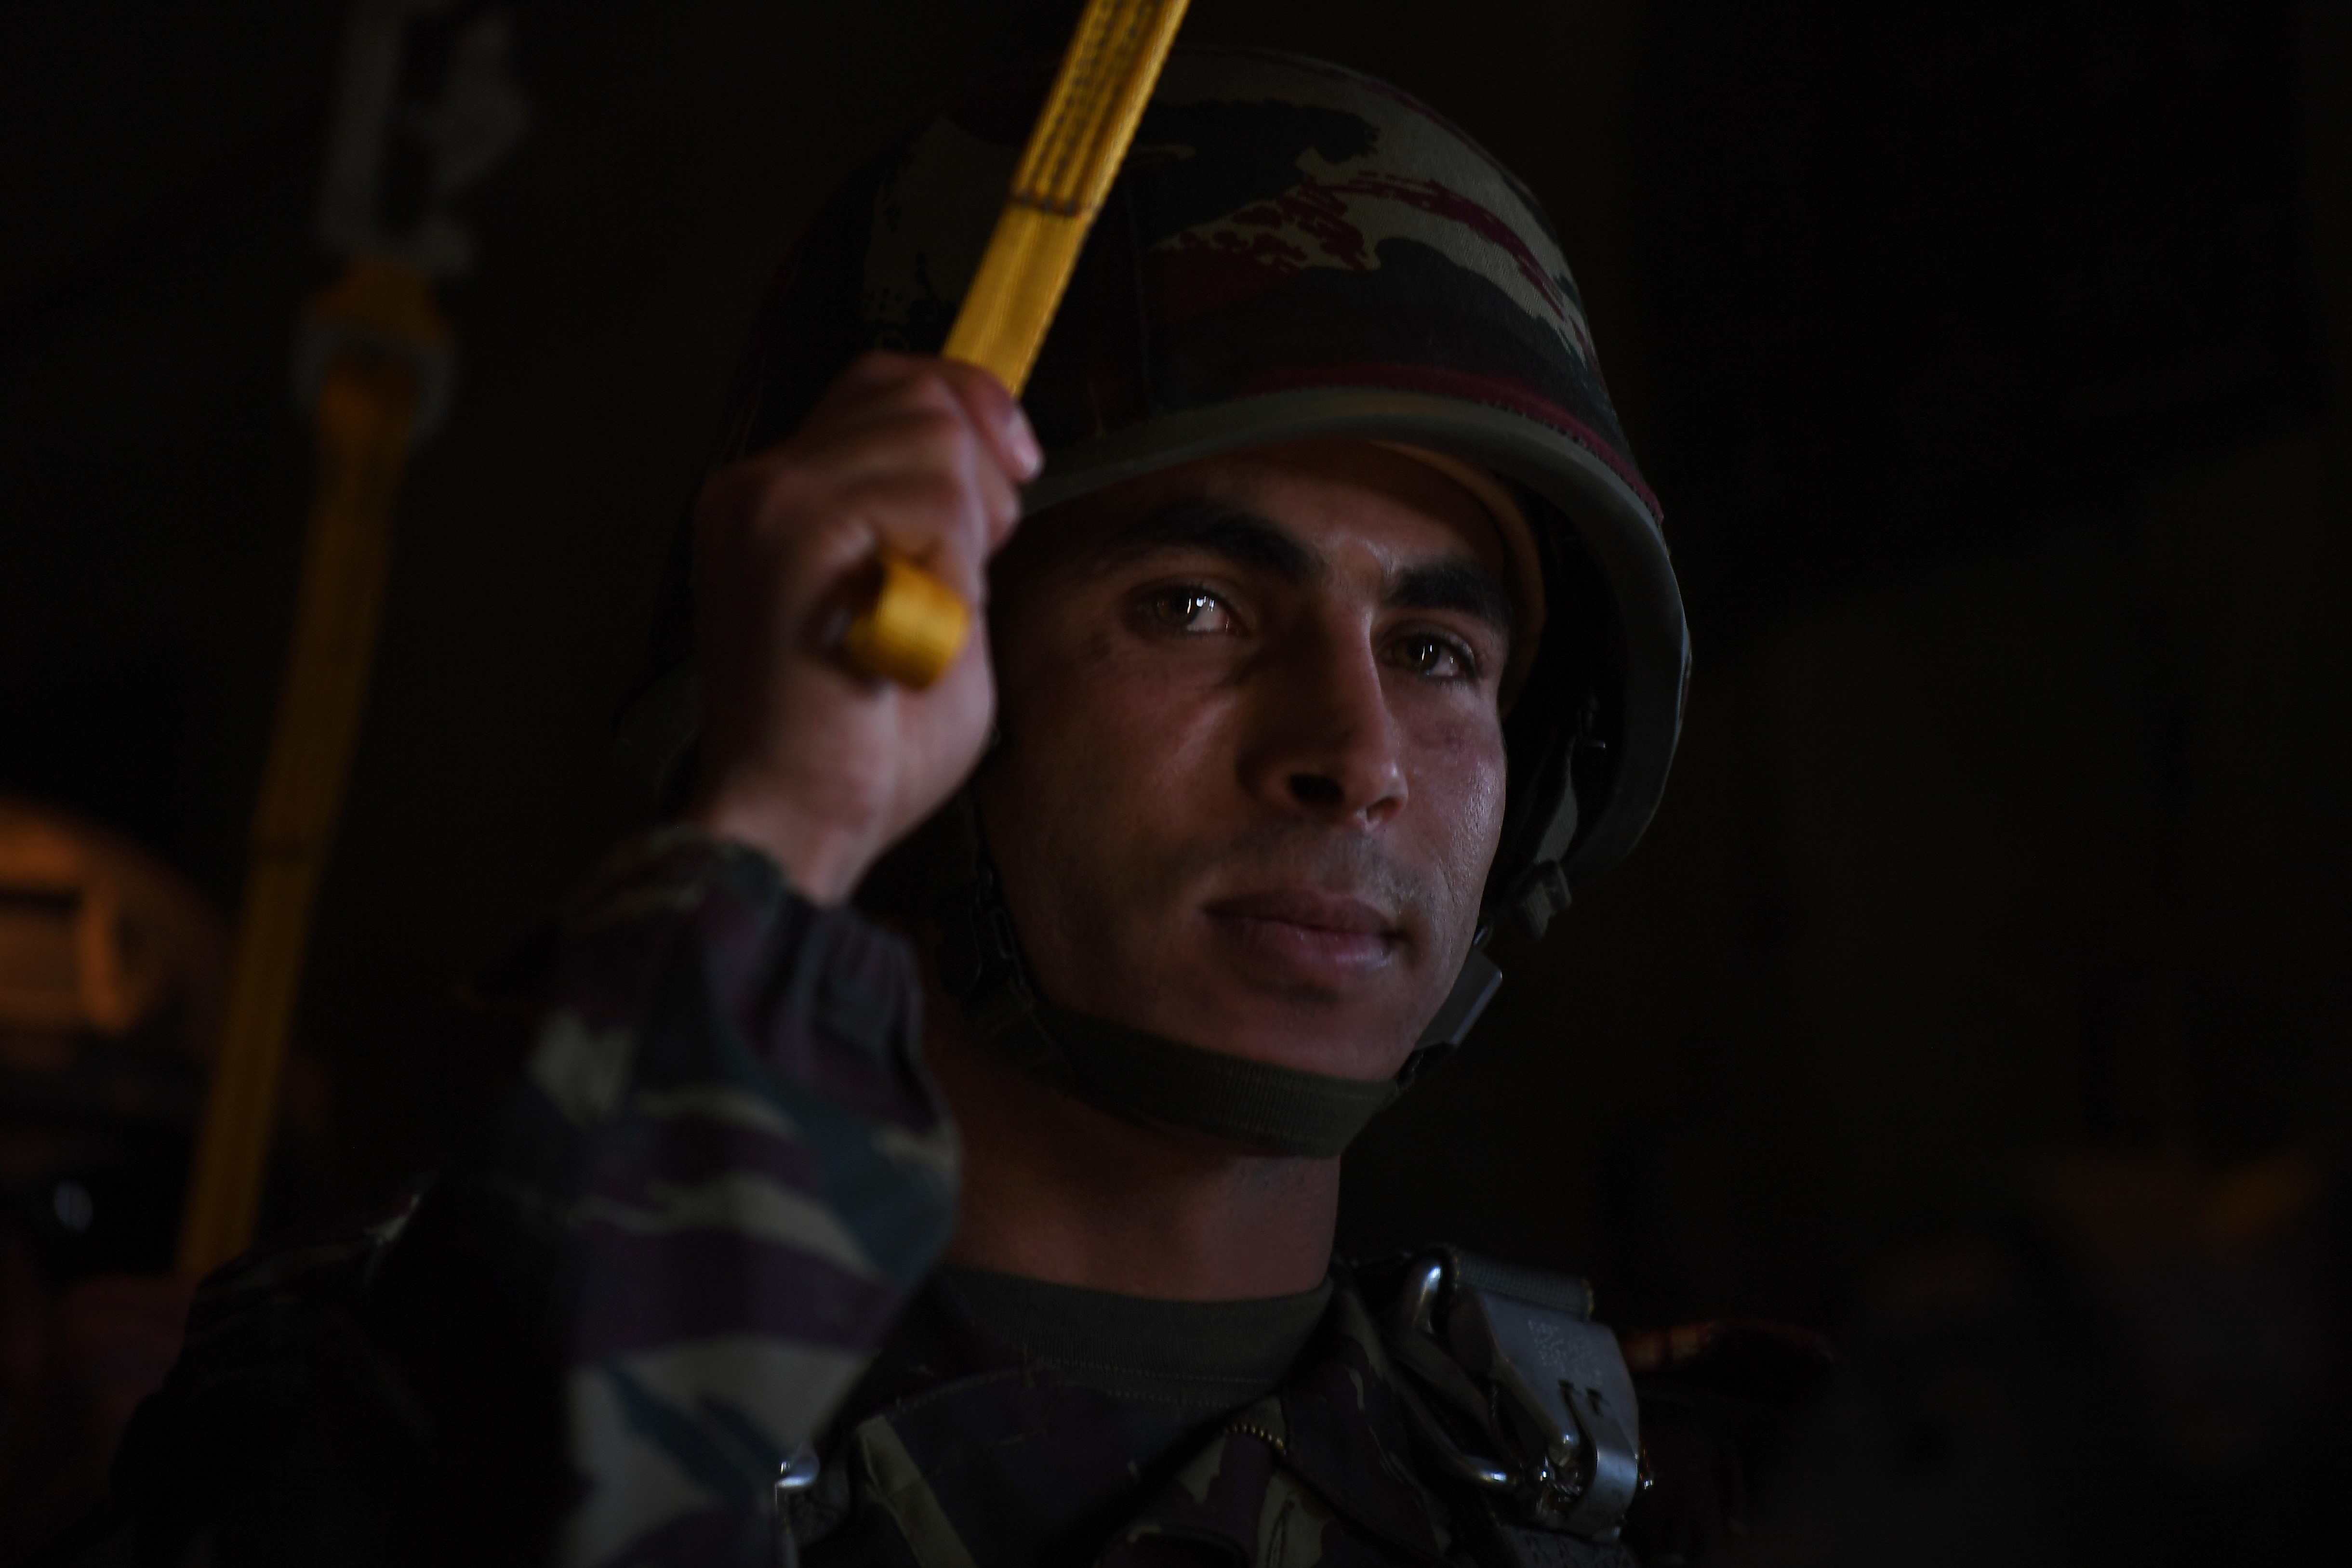 A Royal Moroccan Armed Forces paratrooper prepares for a personnel drop during Exercise African Lion 18, April 16, 2018 near Kenitra Air Base. Approximately 900 U.S. military personnel have arrived in the Kingdom of Morocco to join nearly 400 members of the Royal Moroccan Armed Forces to take part in Exercise African Lion 18. (U.S. Air Force photo by Staff Sgt. Nesha Humes Stanton)